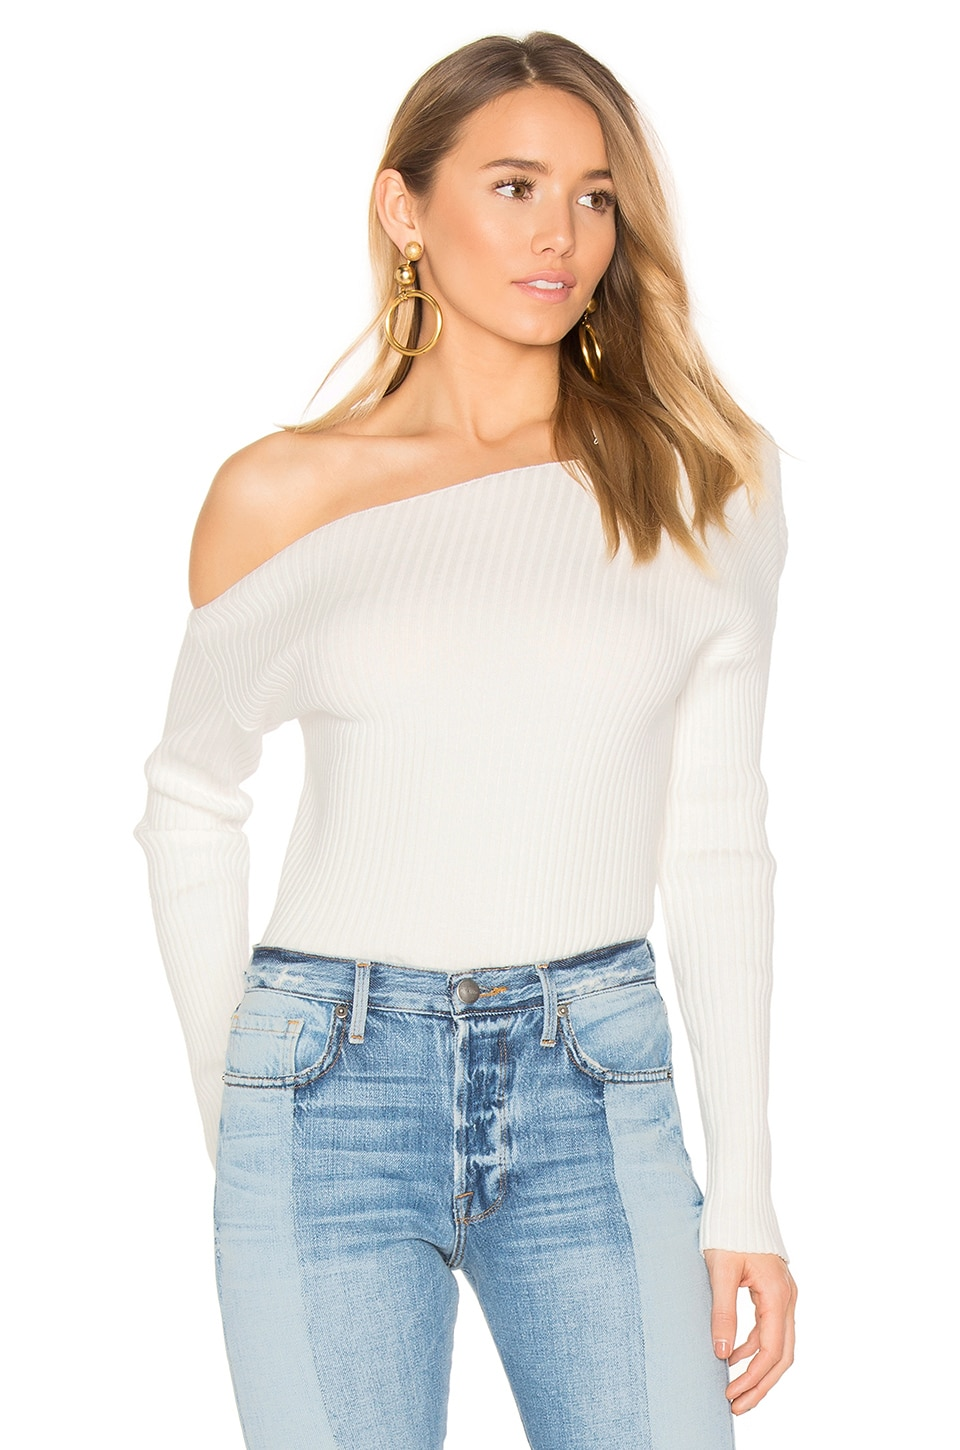 MAJORELLE x REVOLVE Twister Sweater in Ivory